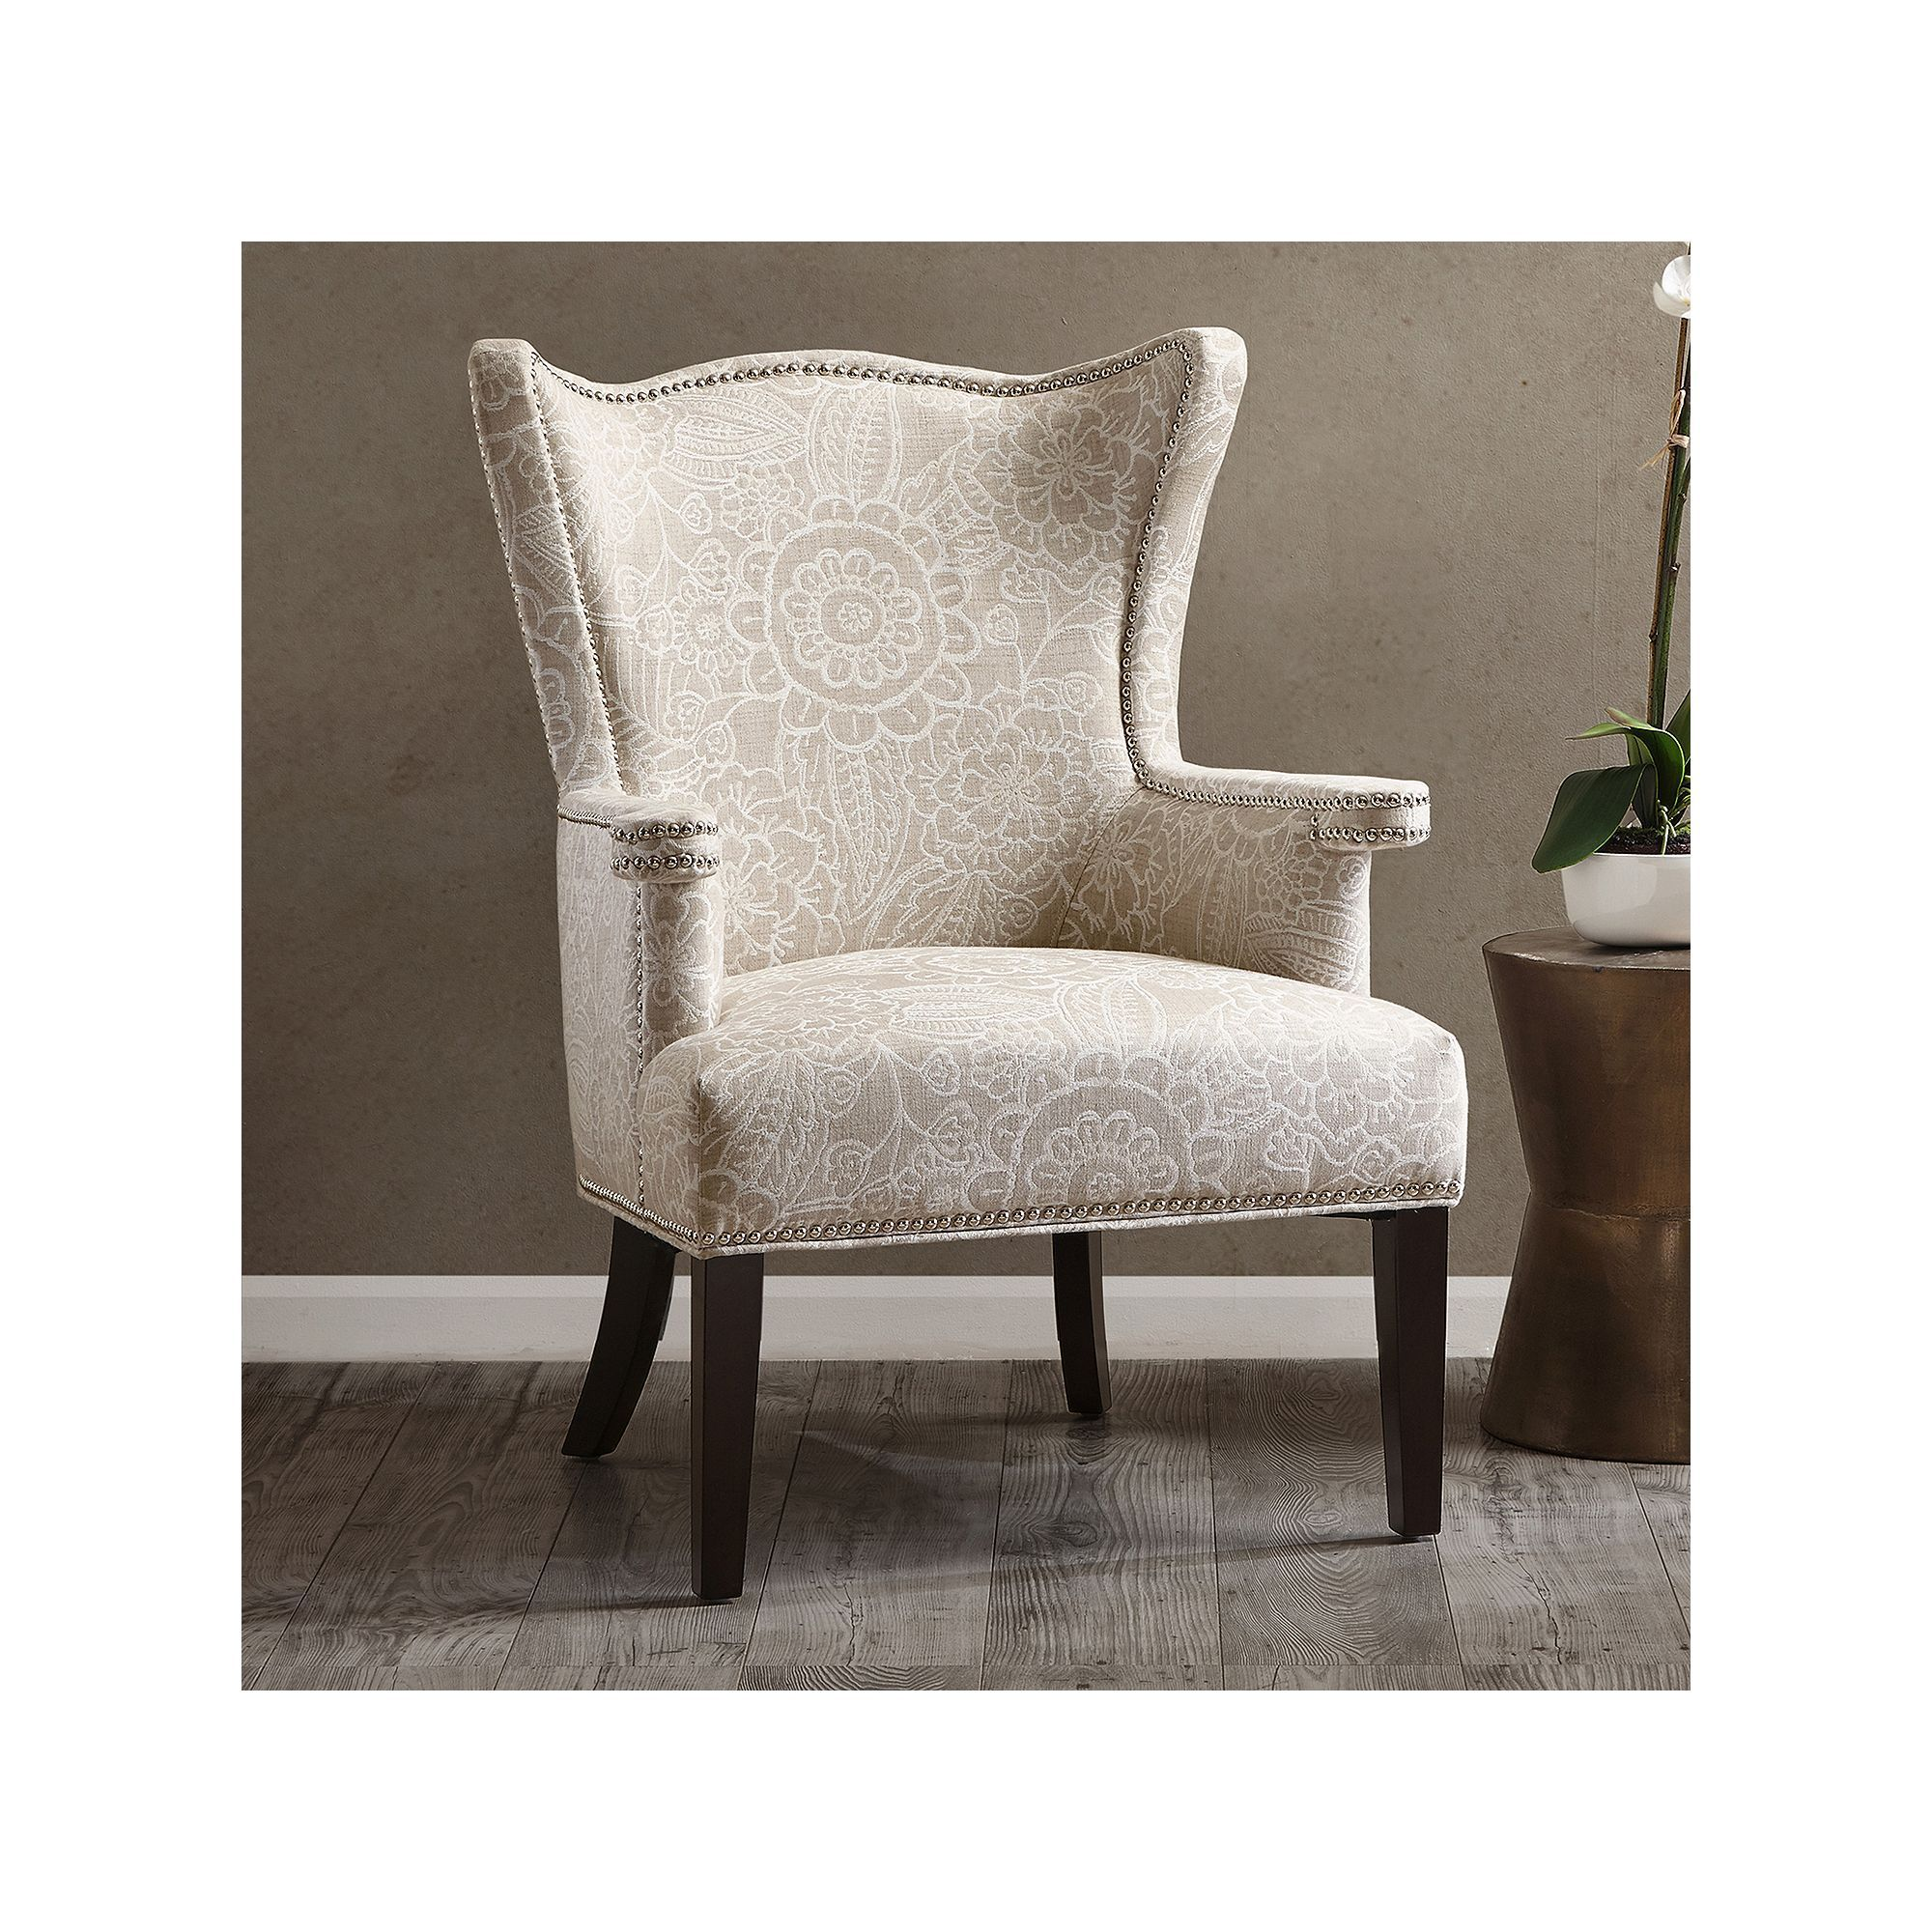 Remarkable Madison Home Usa Beret Floral Accent Chair Products Evergreenethics Interior Chair Design Evergreenethicsorg